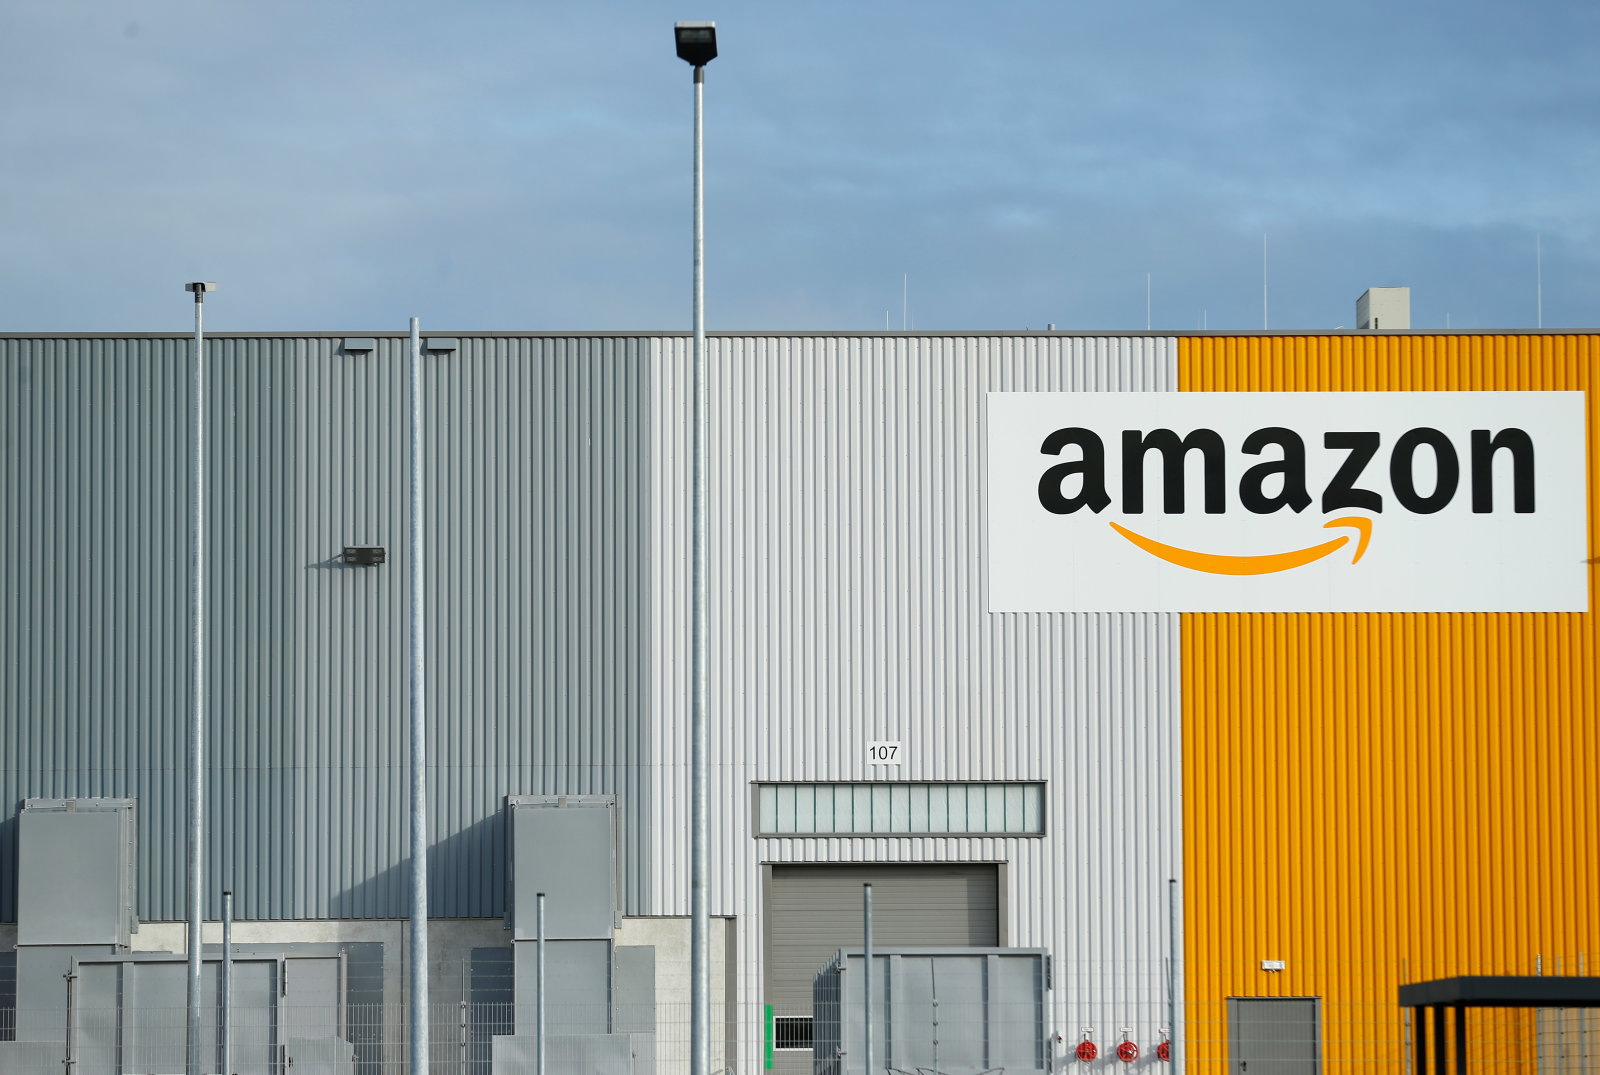 A view of the new Amazon logistic center with the company's logo in Dortmund, Germany November 14, 2017. REUTERS/Thilo Schmuelgen